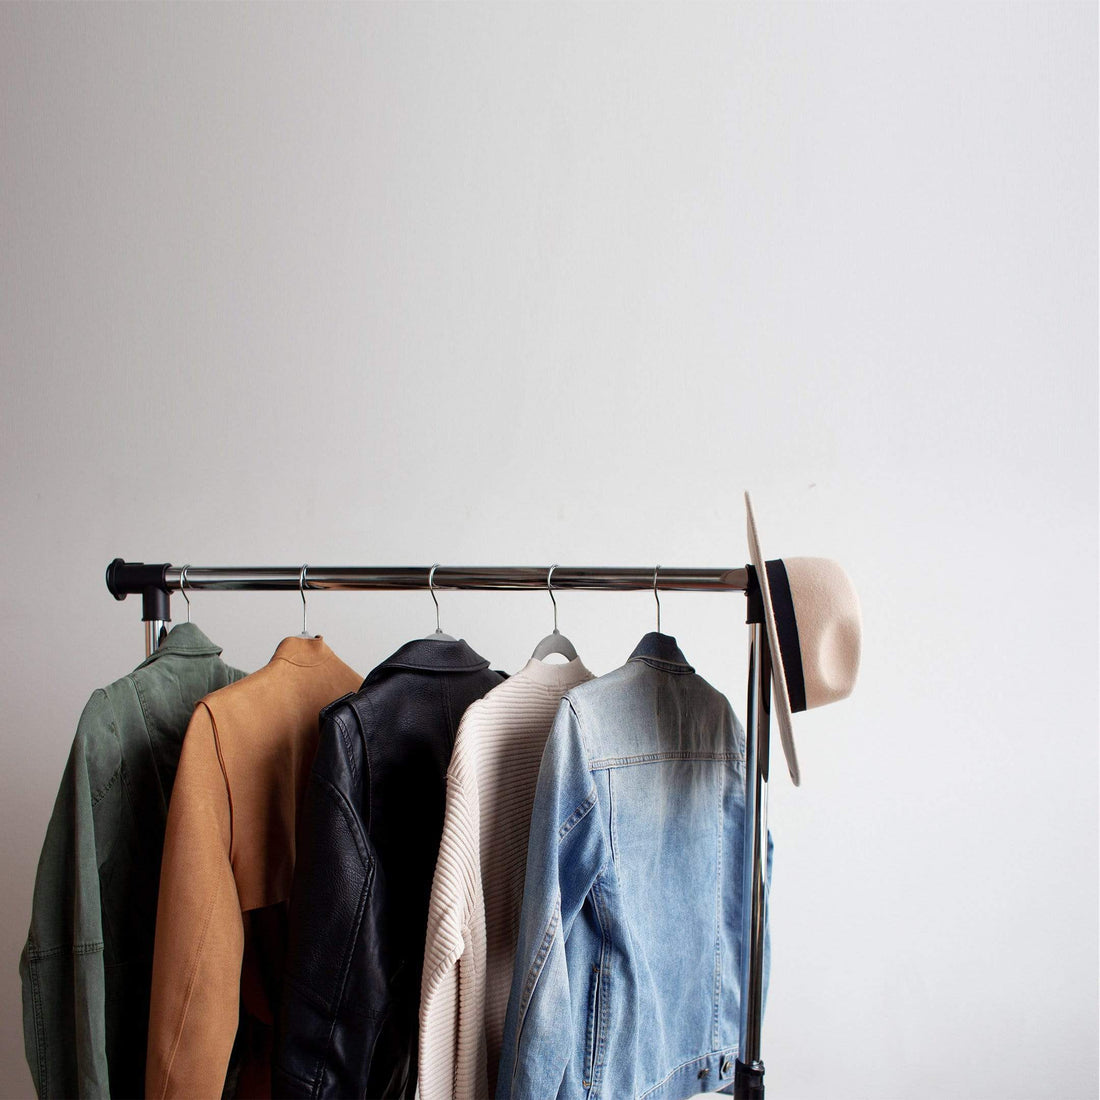 How to choose the right wardrobe for your bedroom